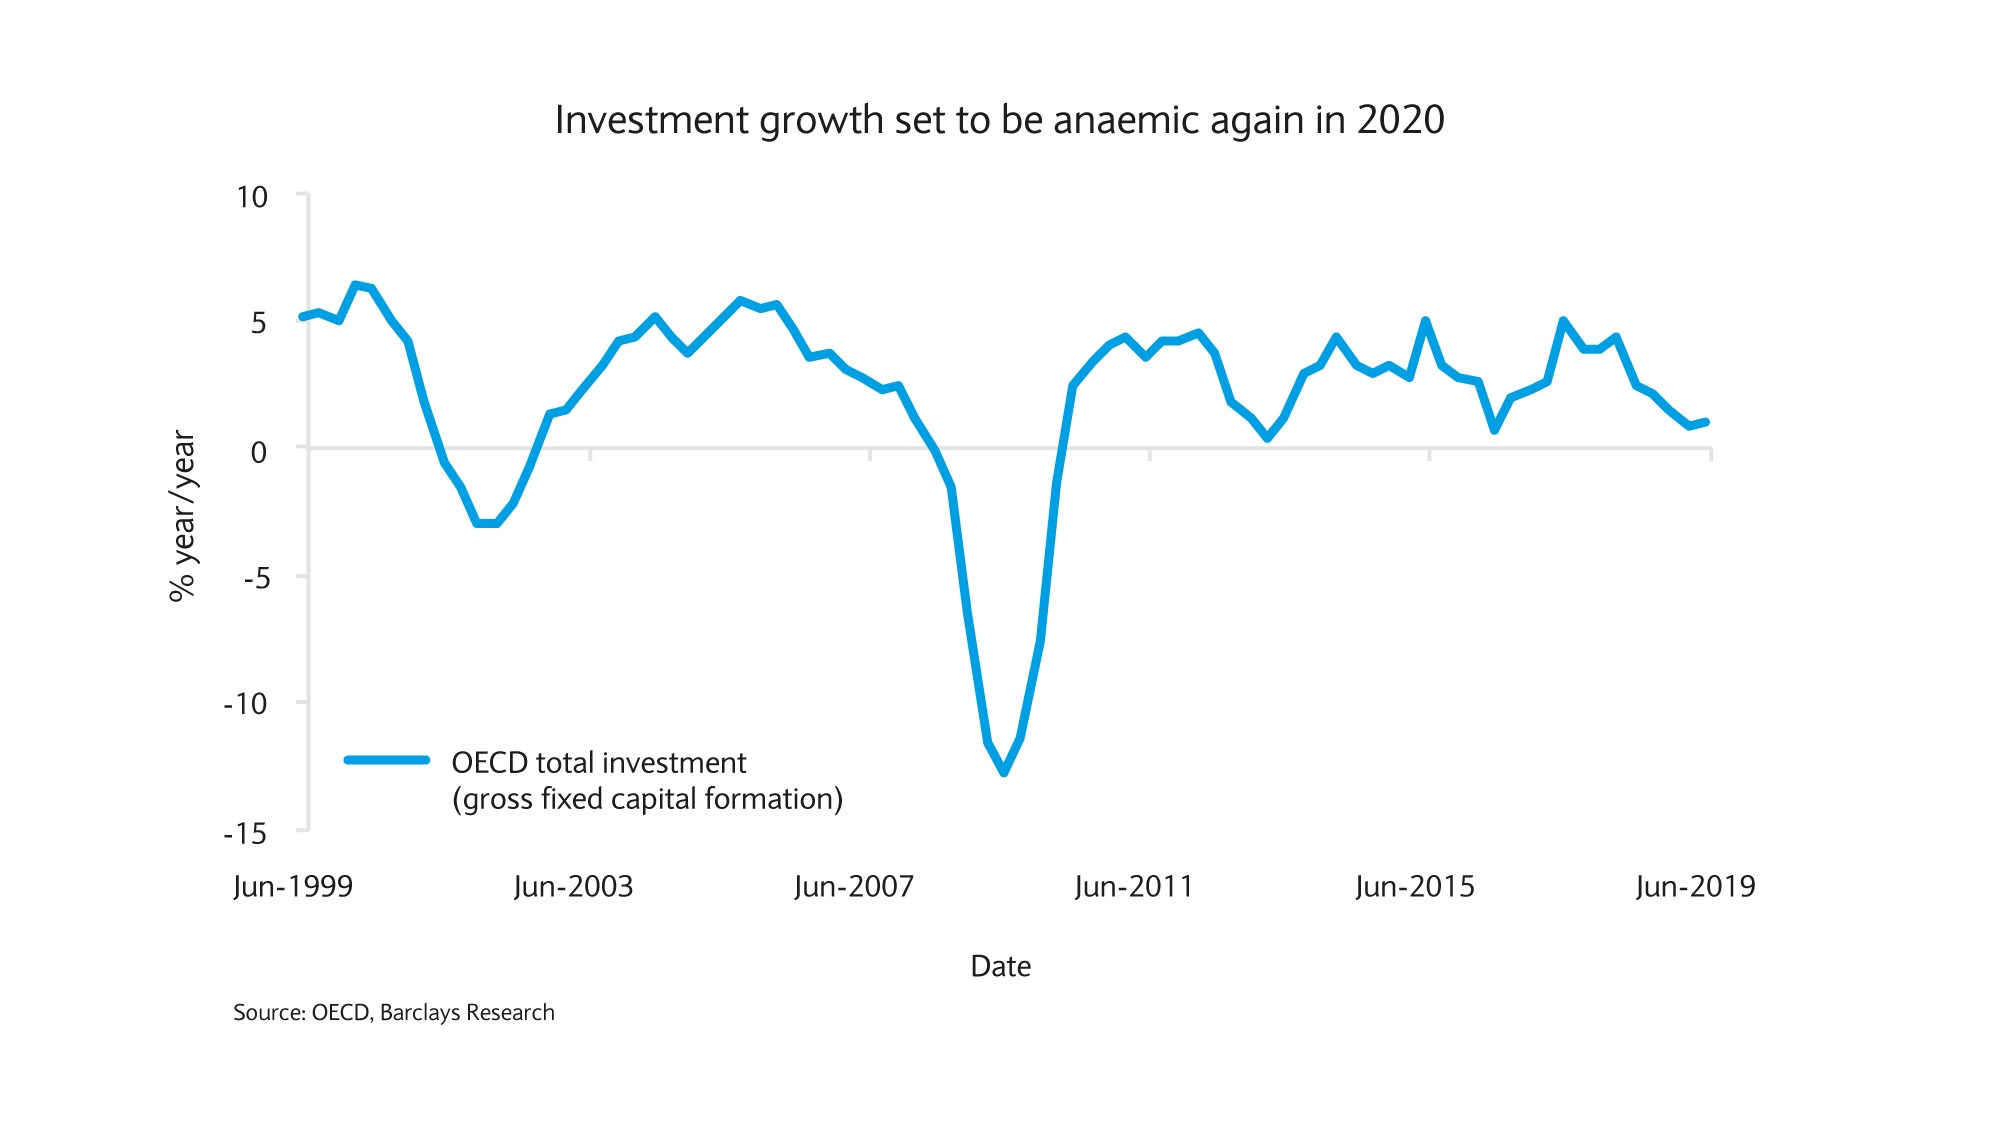 Investment grwoth set to be anaemic again in 2020